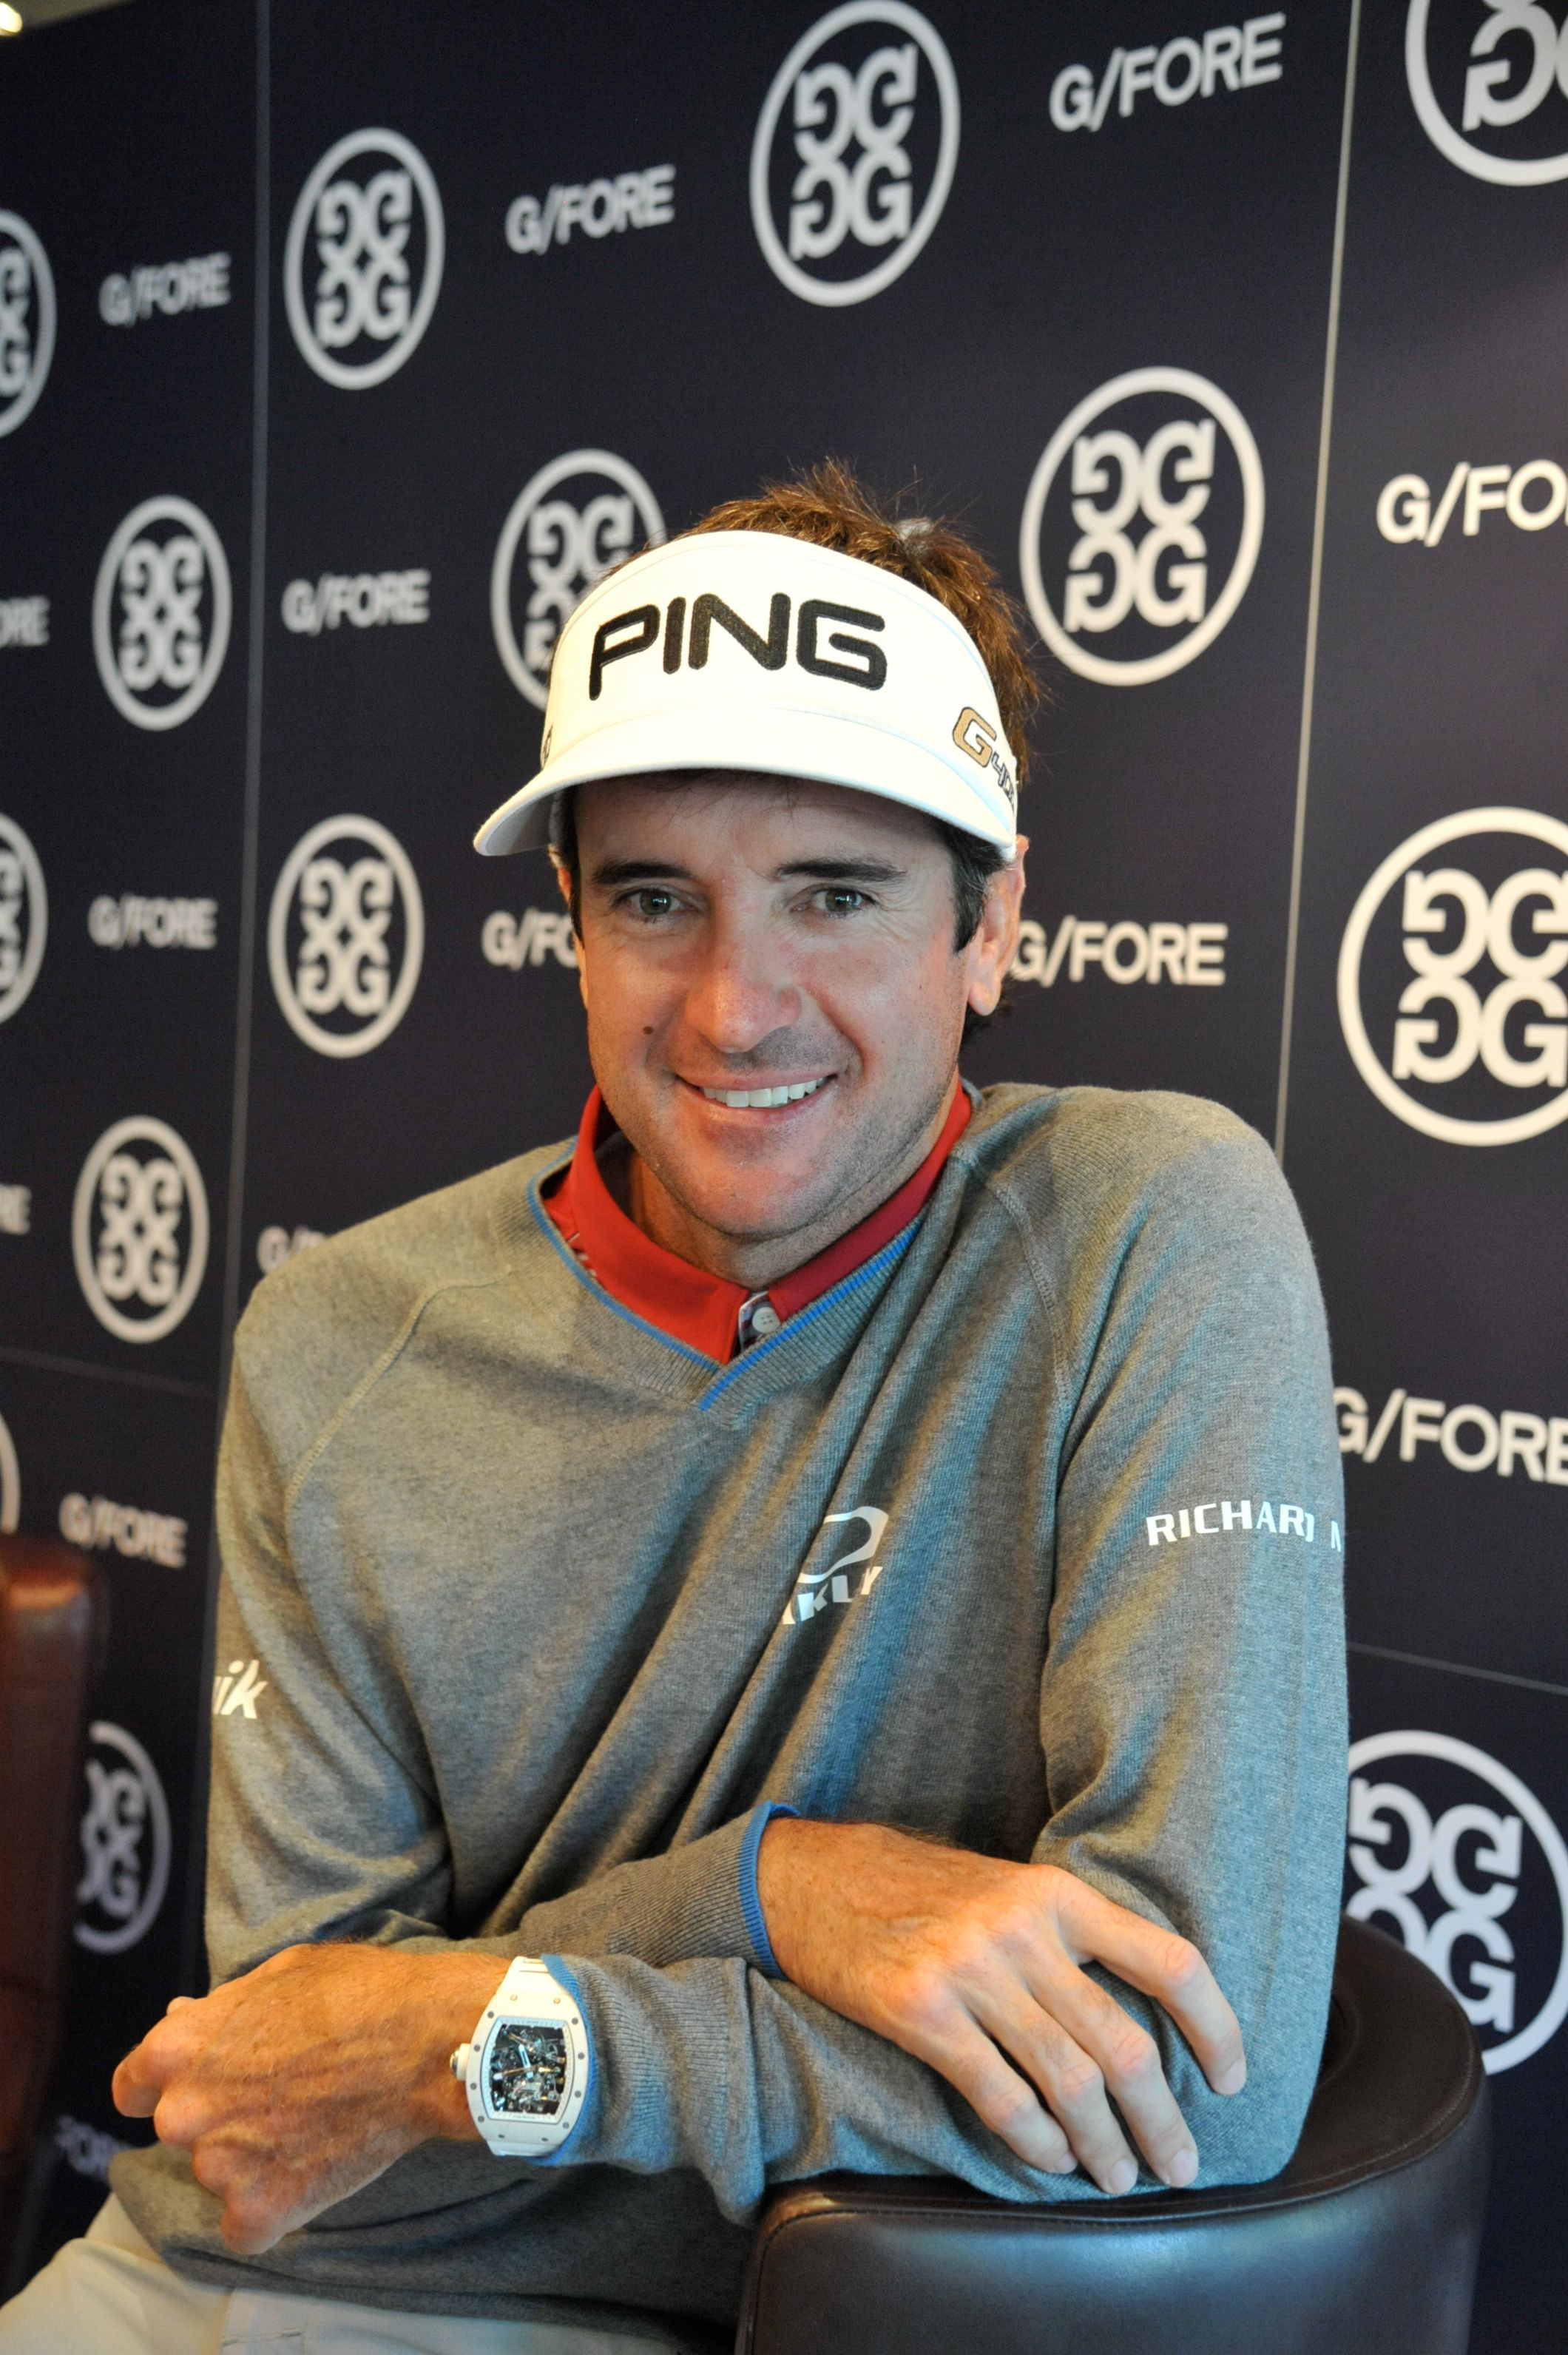 Bubba gives candid interview in Southport during Open week